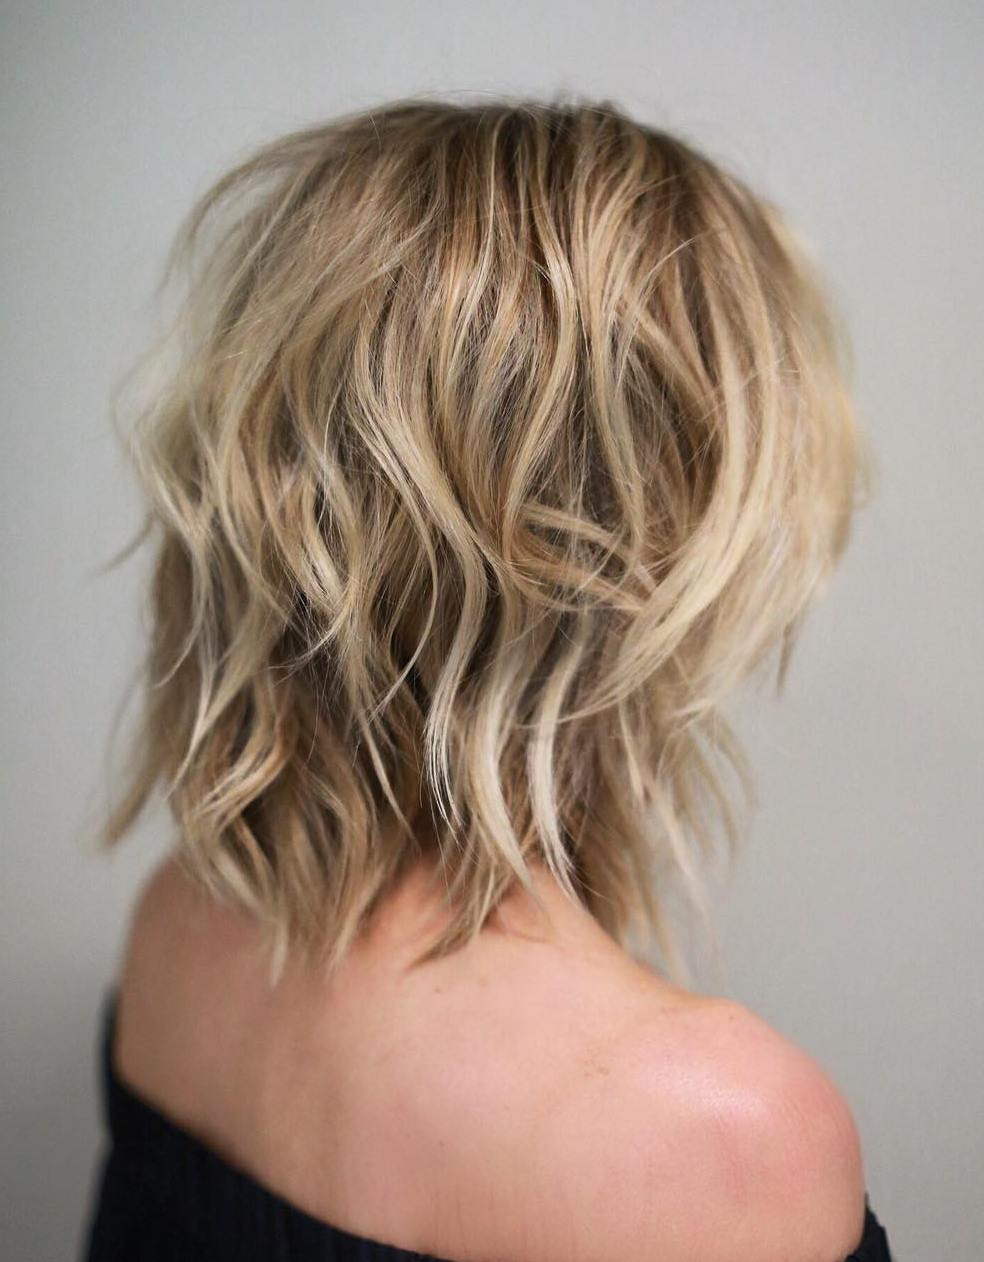 Marvelous Shag Haircuts And Hairstyles In 2016 Therighthairstyles Short Hairstyles Gunalazisus